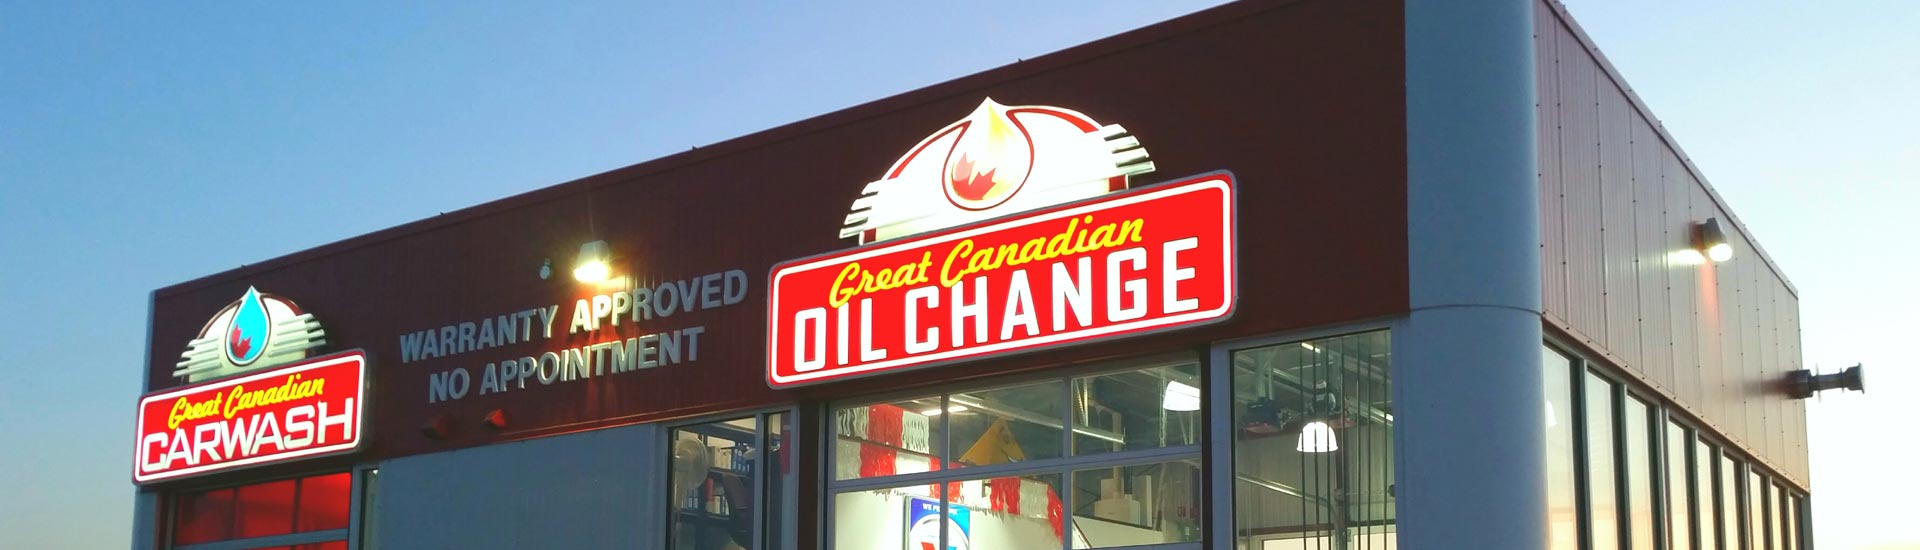 Great Canadian Oil Change franchise banner